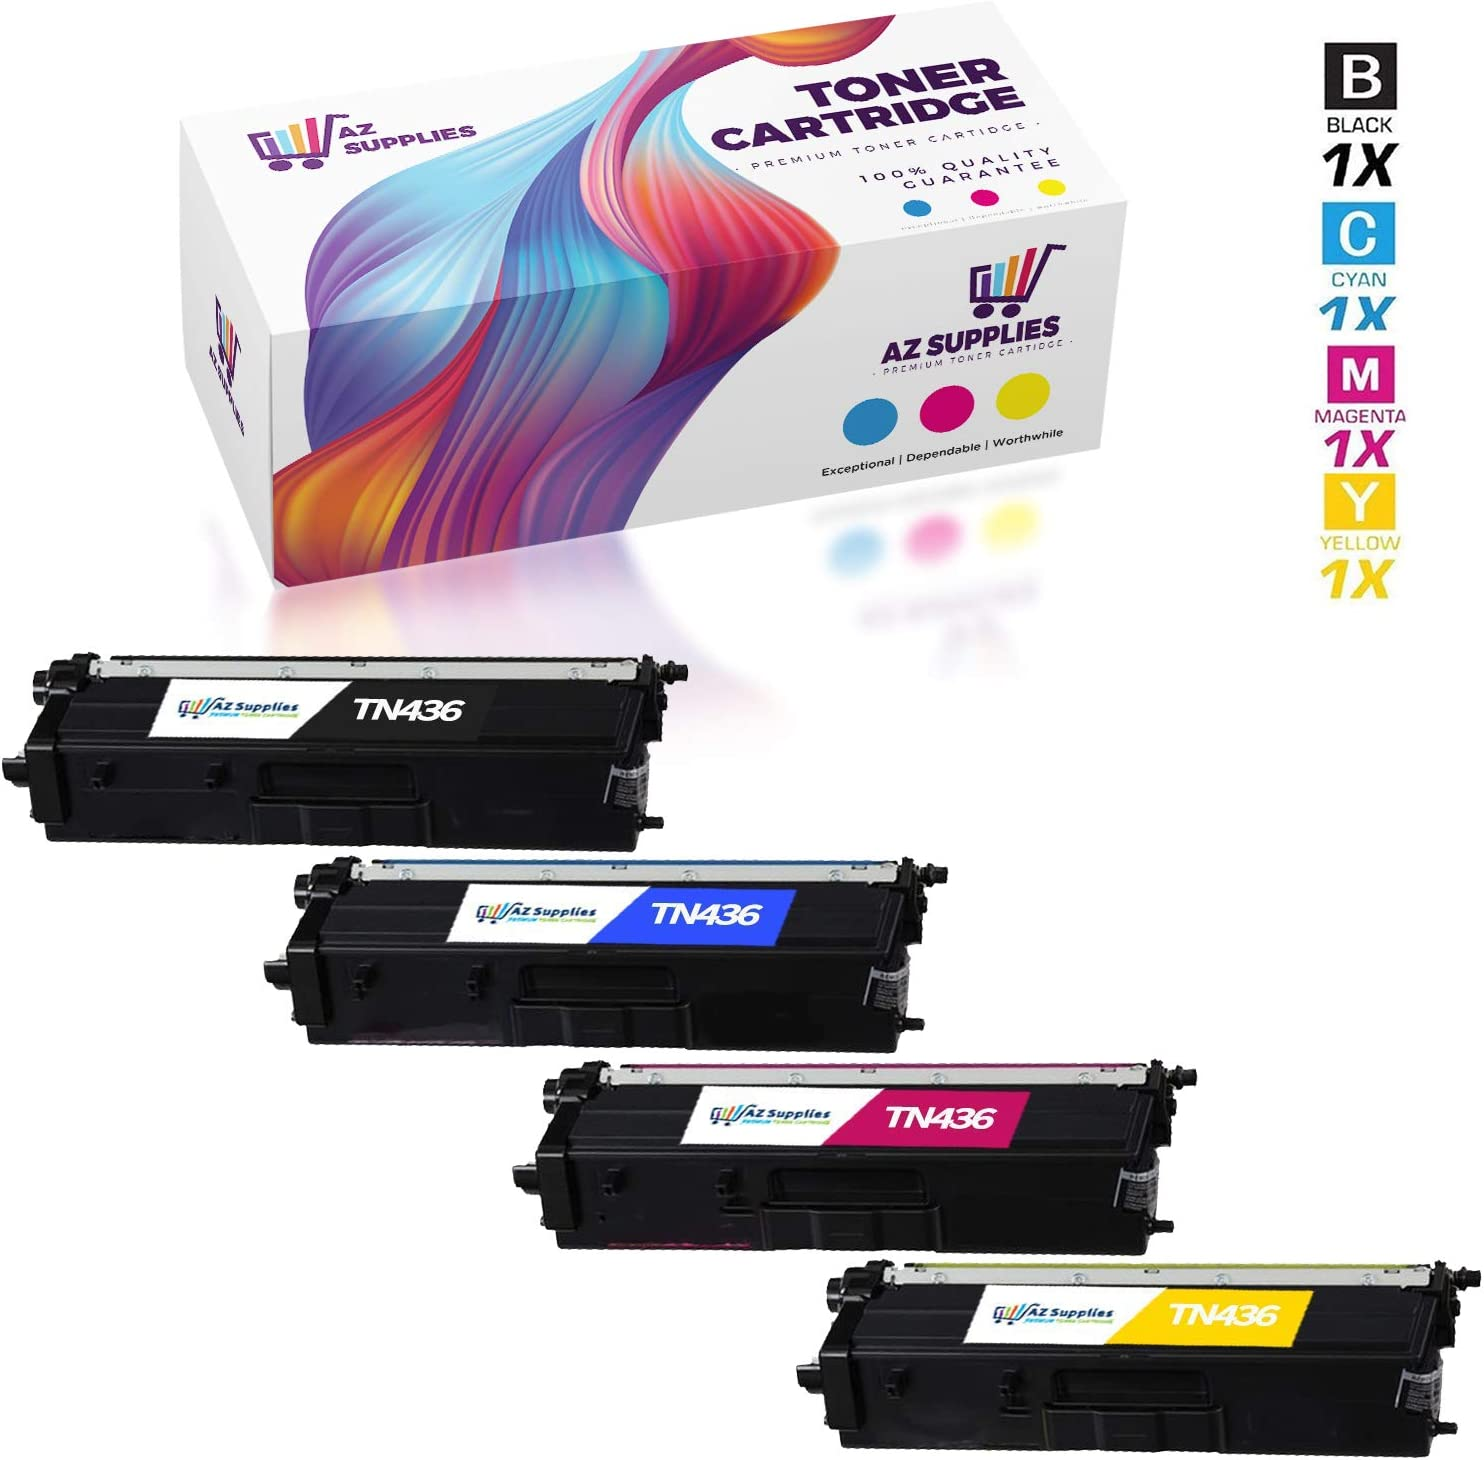 Black, Yellow, Cyan, Magenta, 4-Pack AZ Compatible Toner Cartridge Replacement for Brother TN436 use in HL-L8360CDW HL-L8360CDWT HL-L9310CDW MFC-L8900CDW MFC-L9570CDW